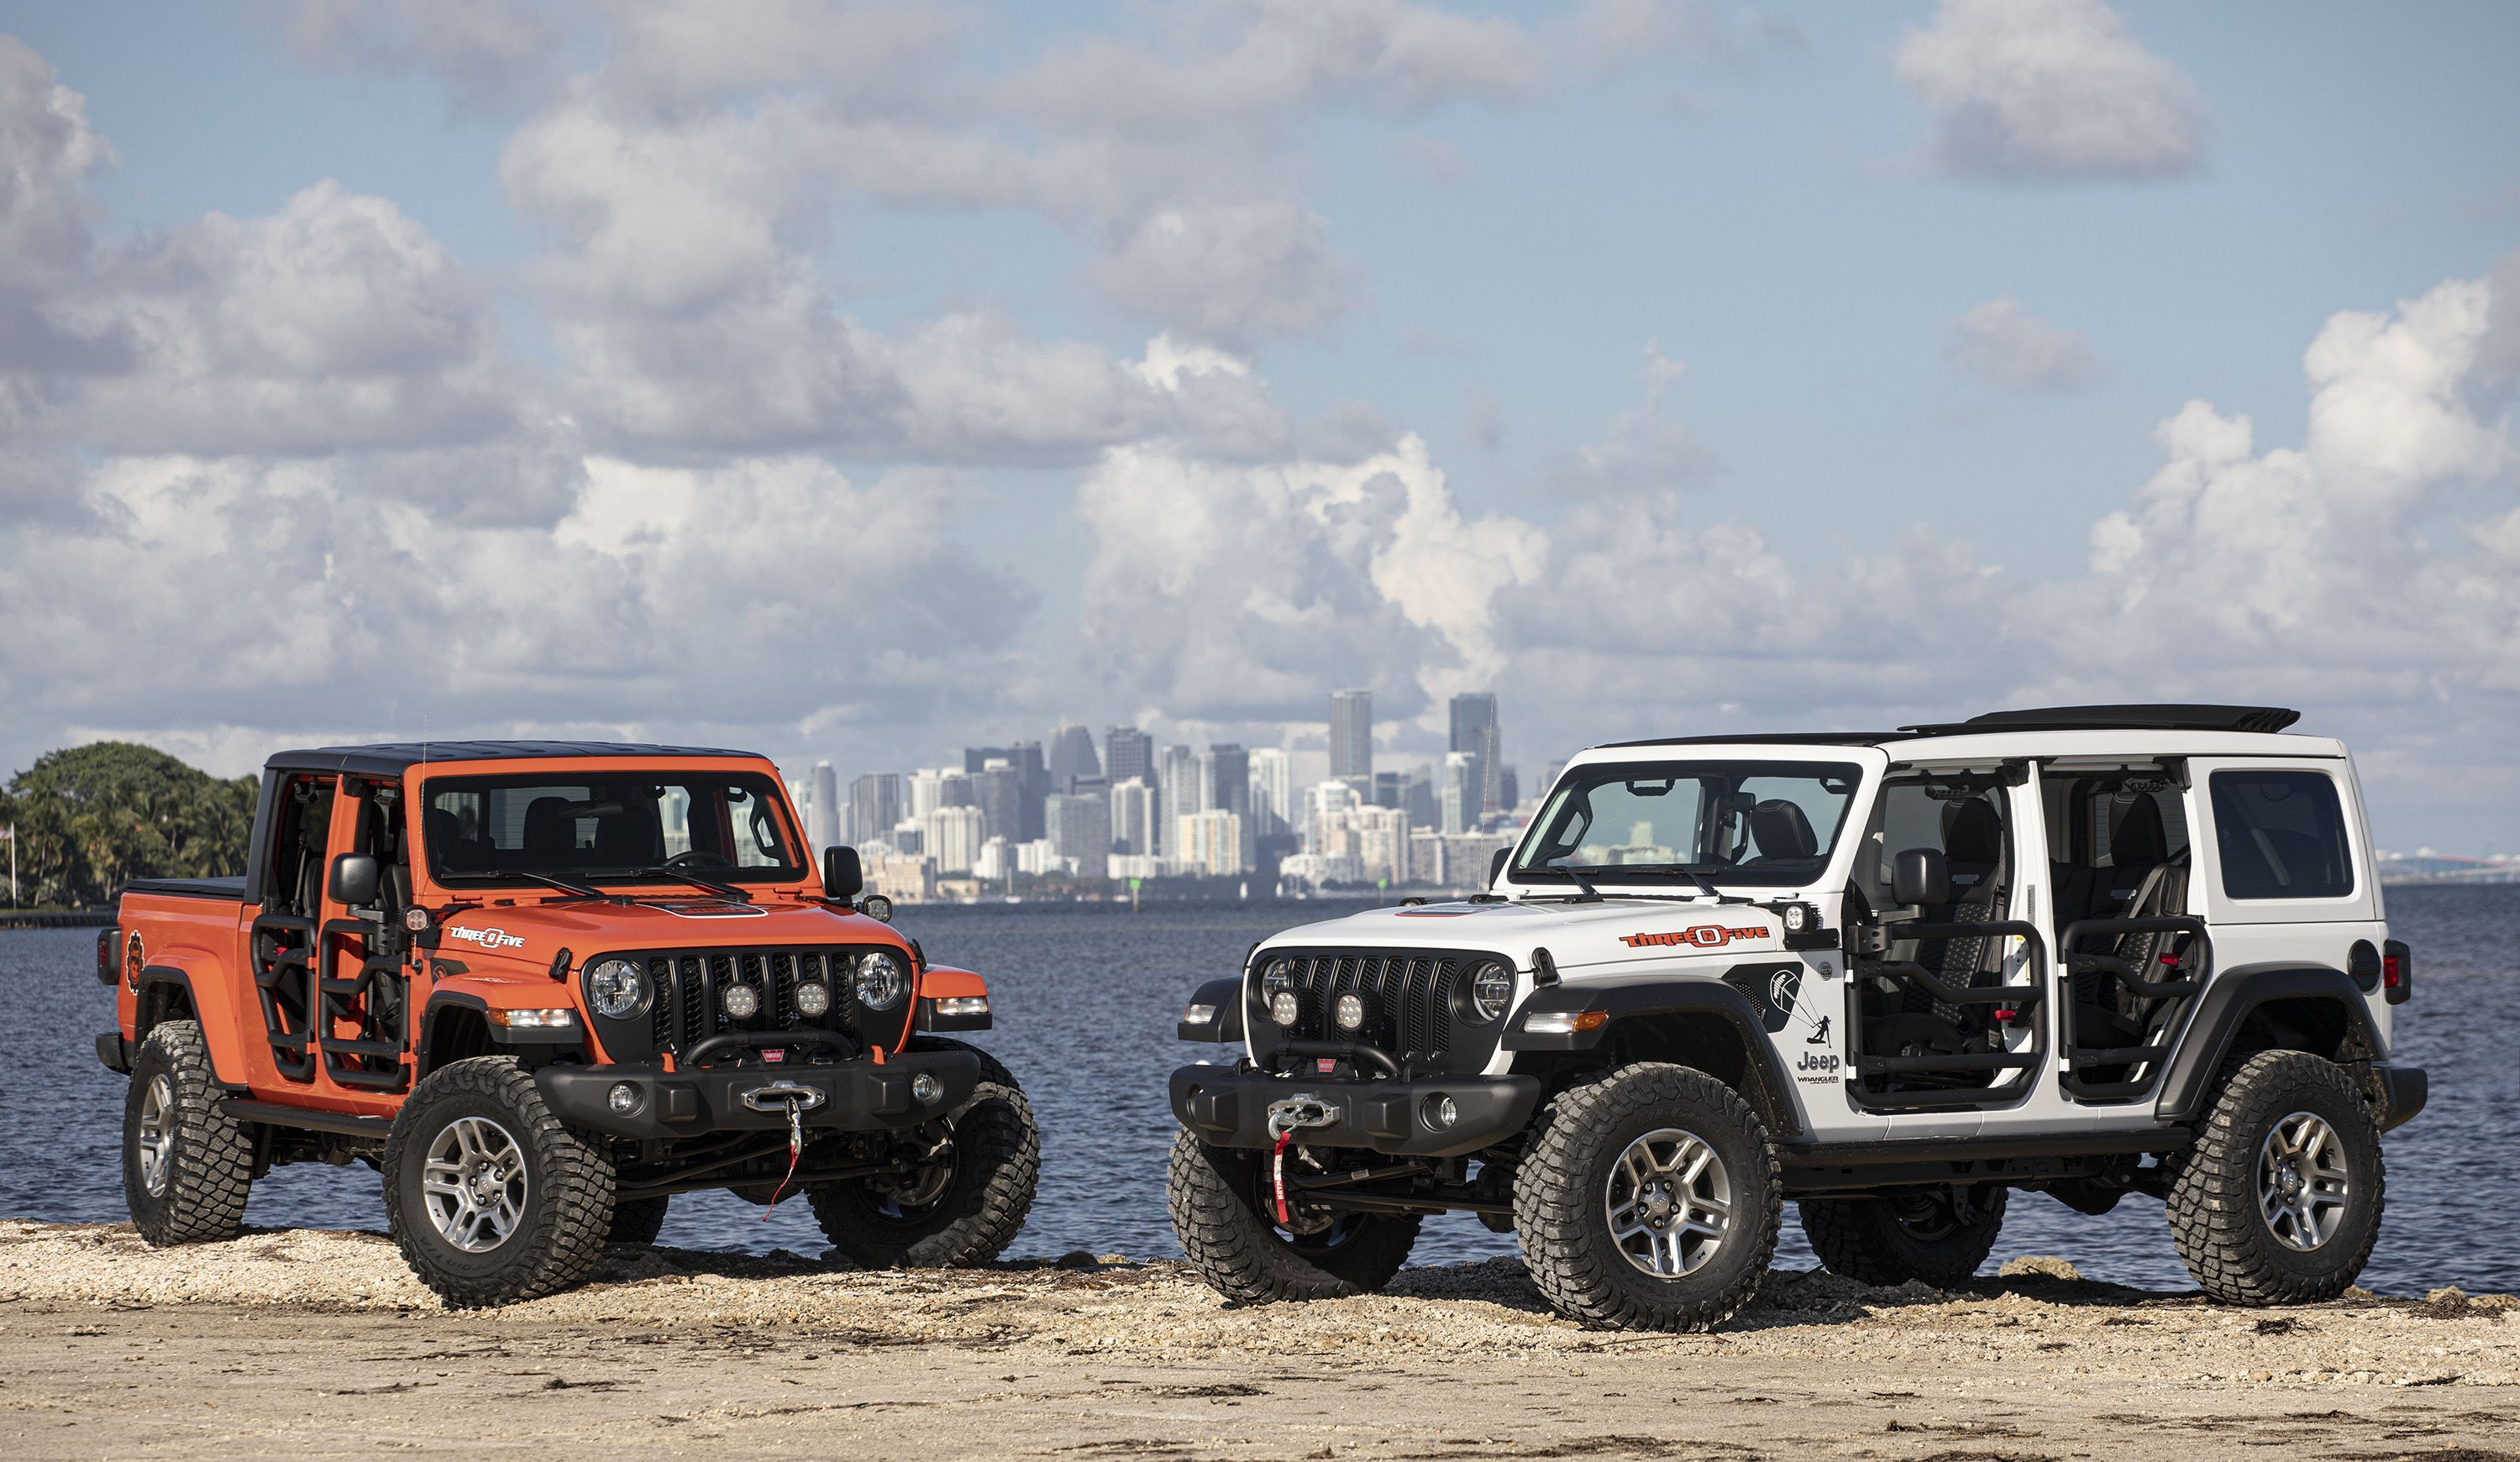 Jeep Built Miami Themed Special Editions Of The Wrangler And